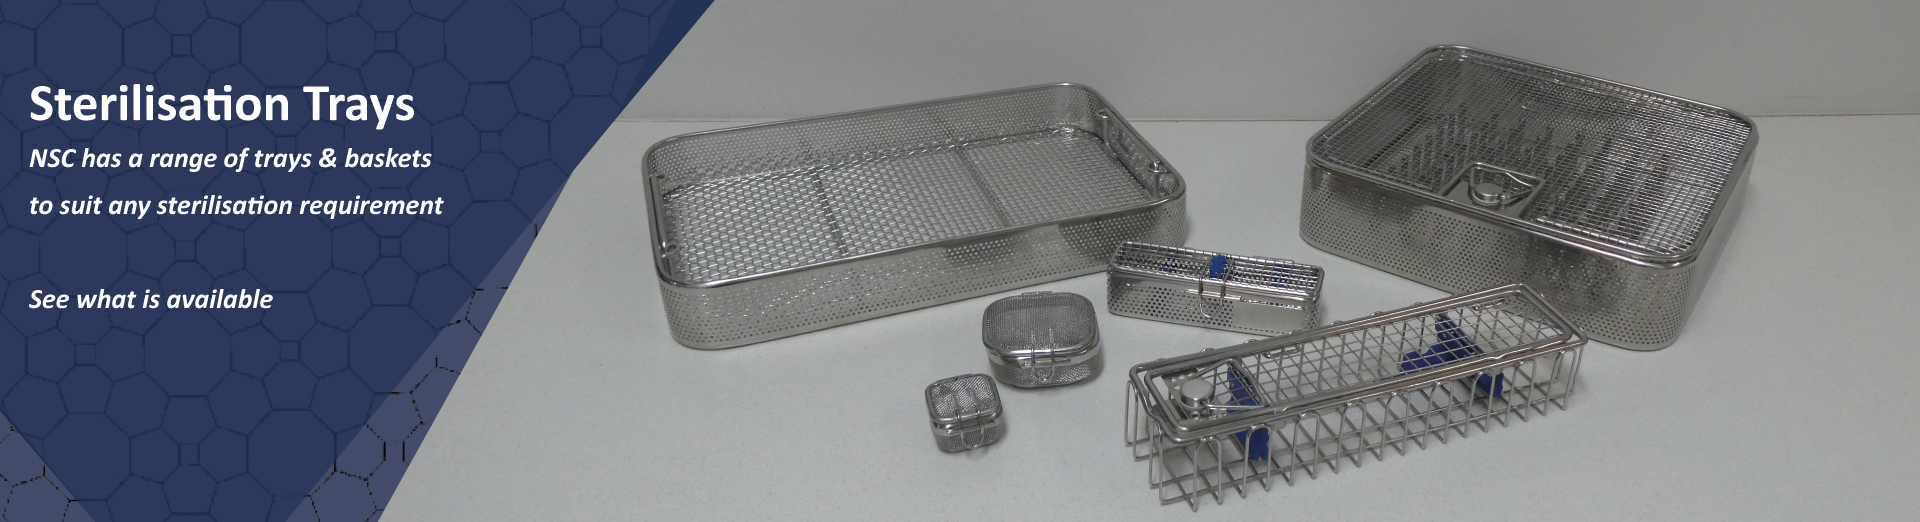 nsc-slider-2019-sterilisation-trays